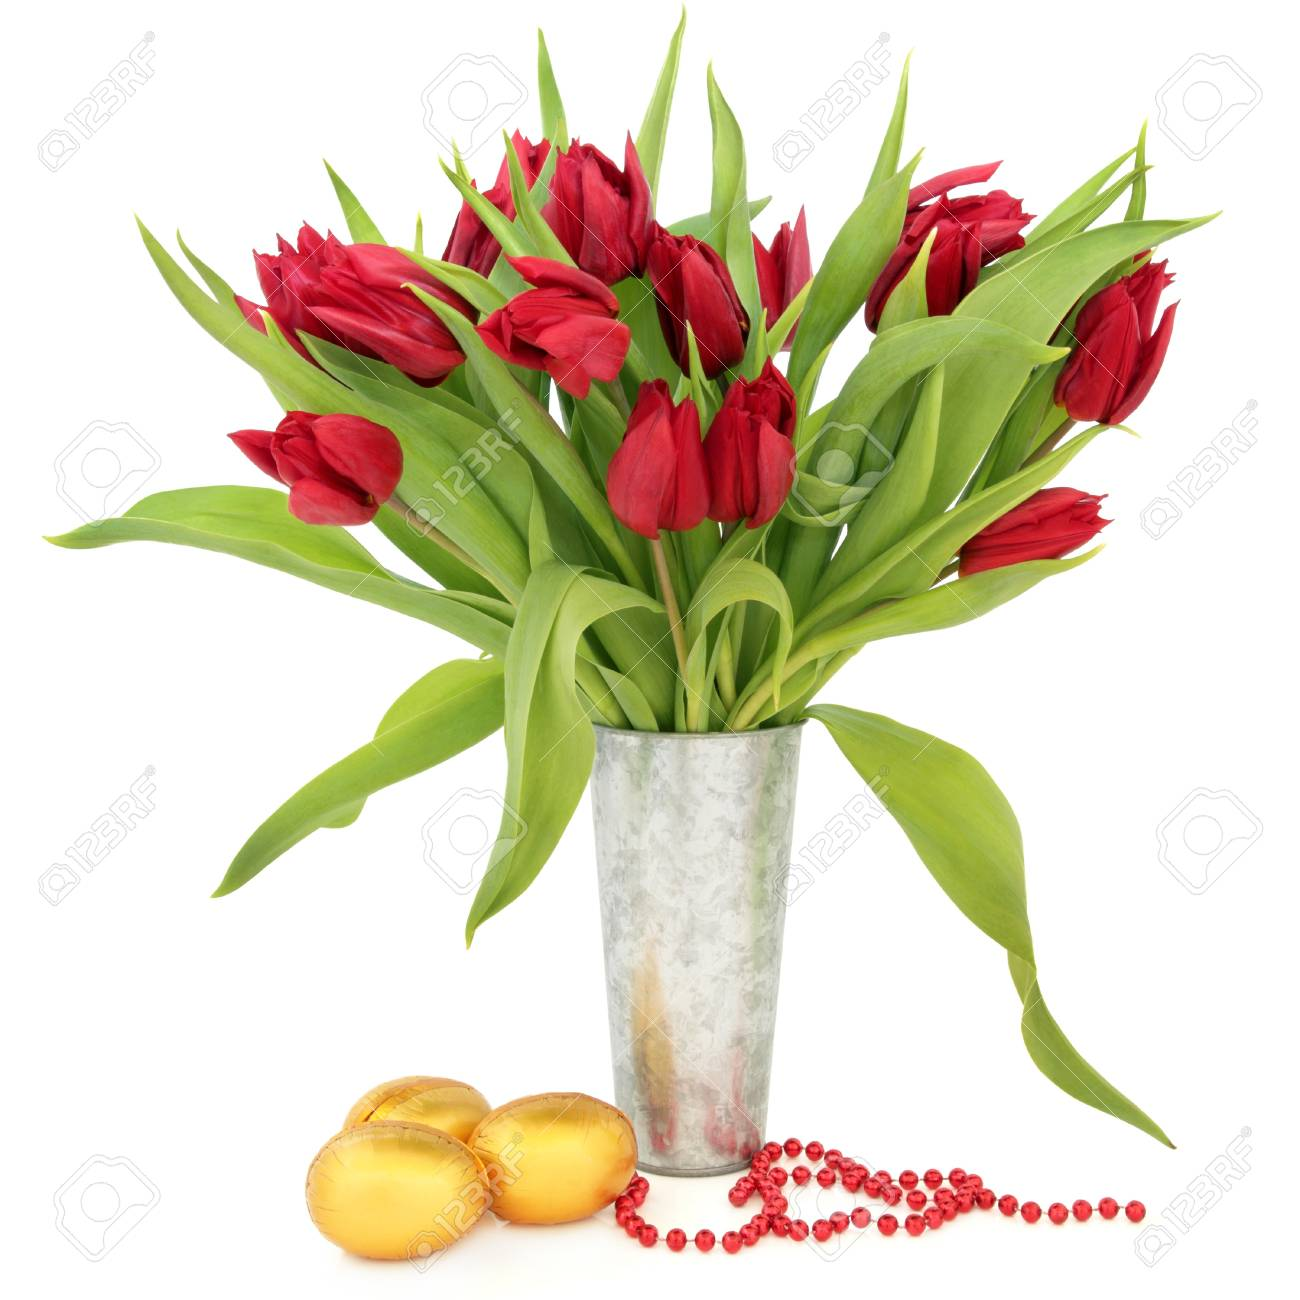 Tulip Flower Arrangement In A Metal Vase With Gold Easter Egg